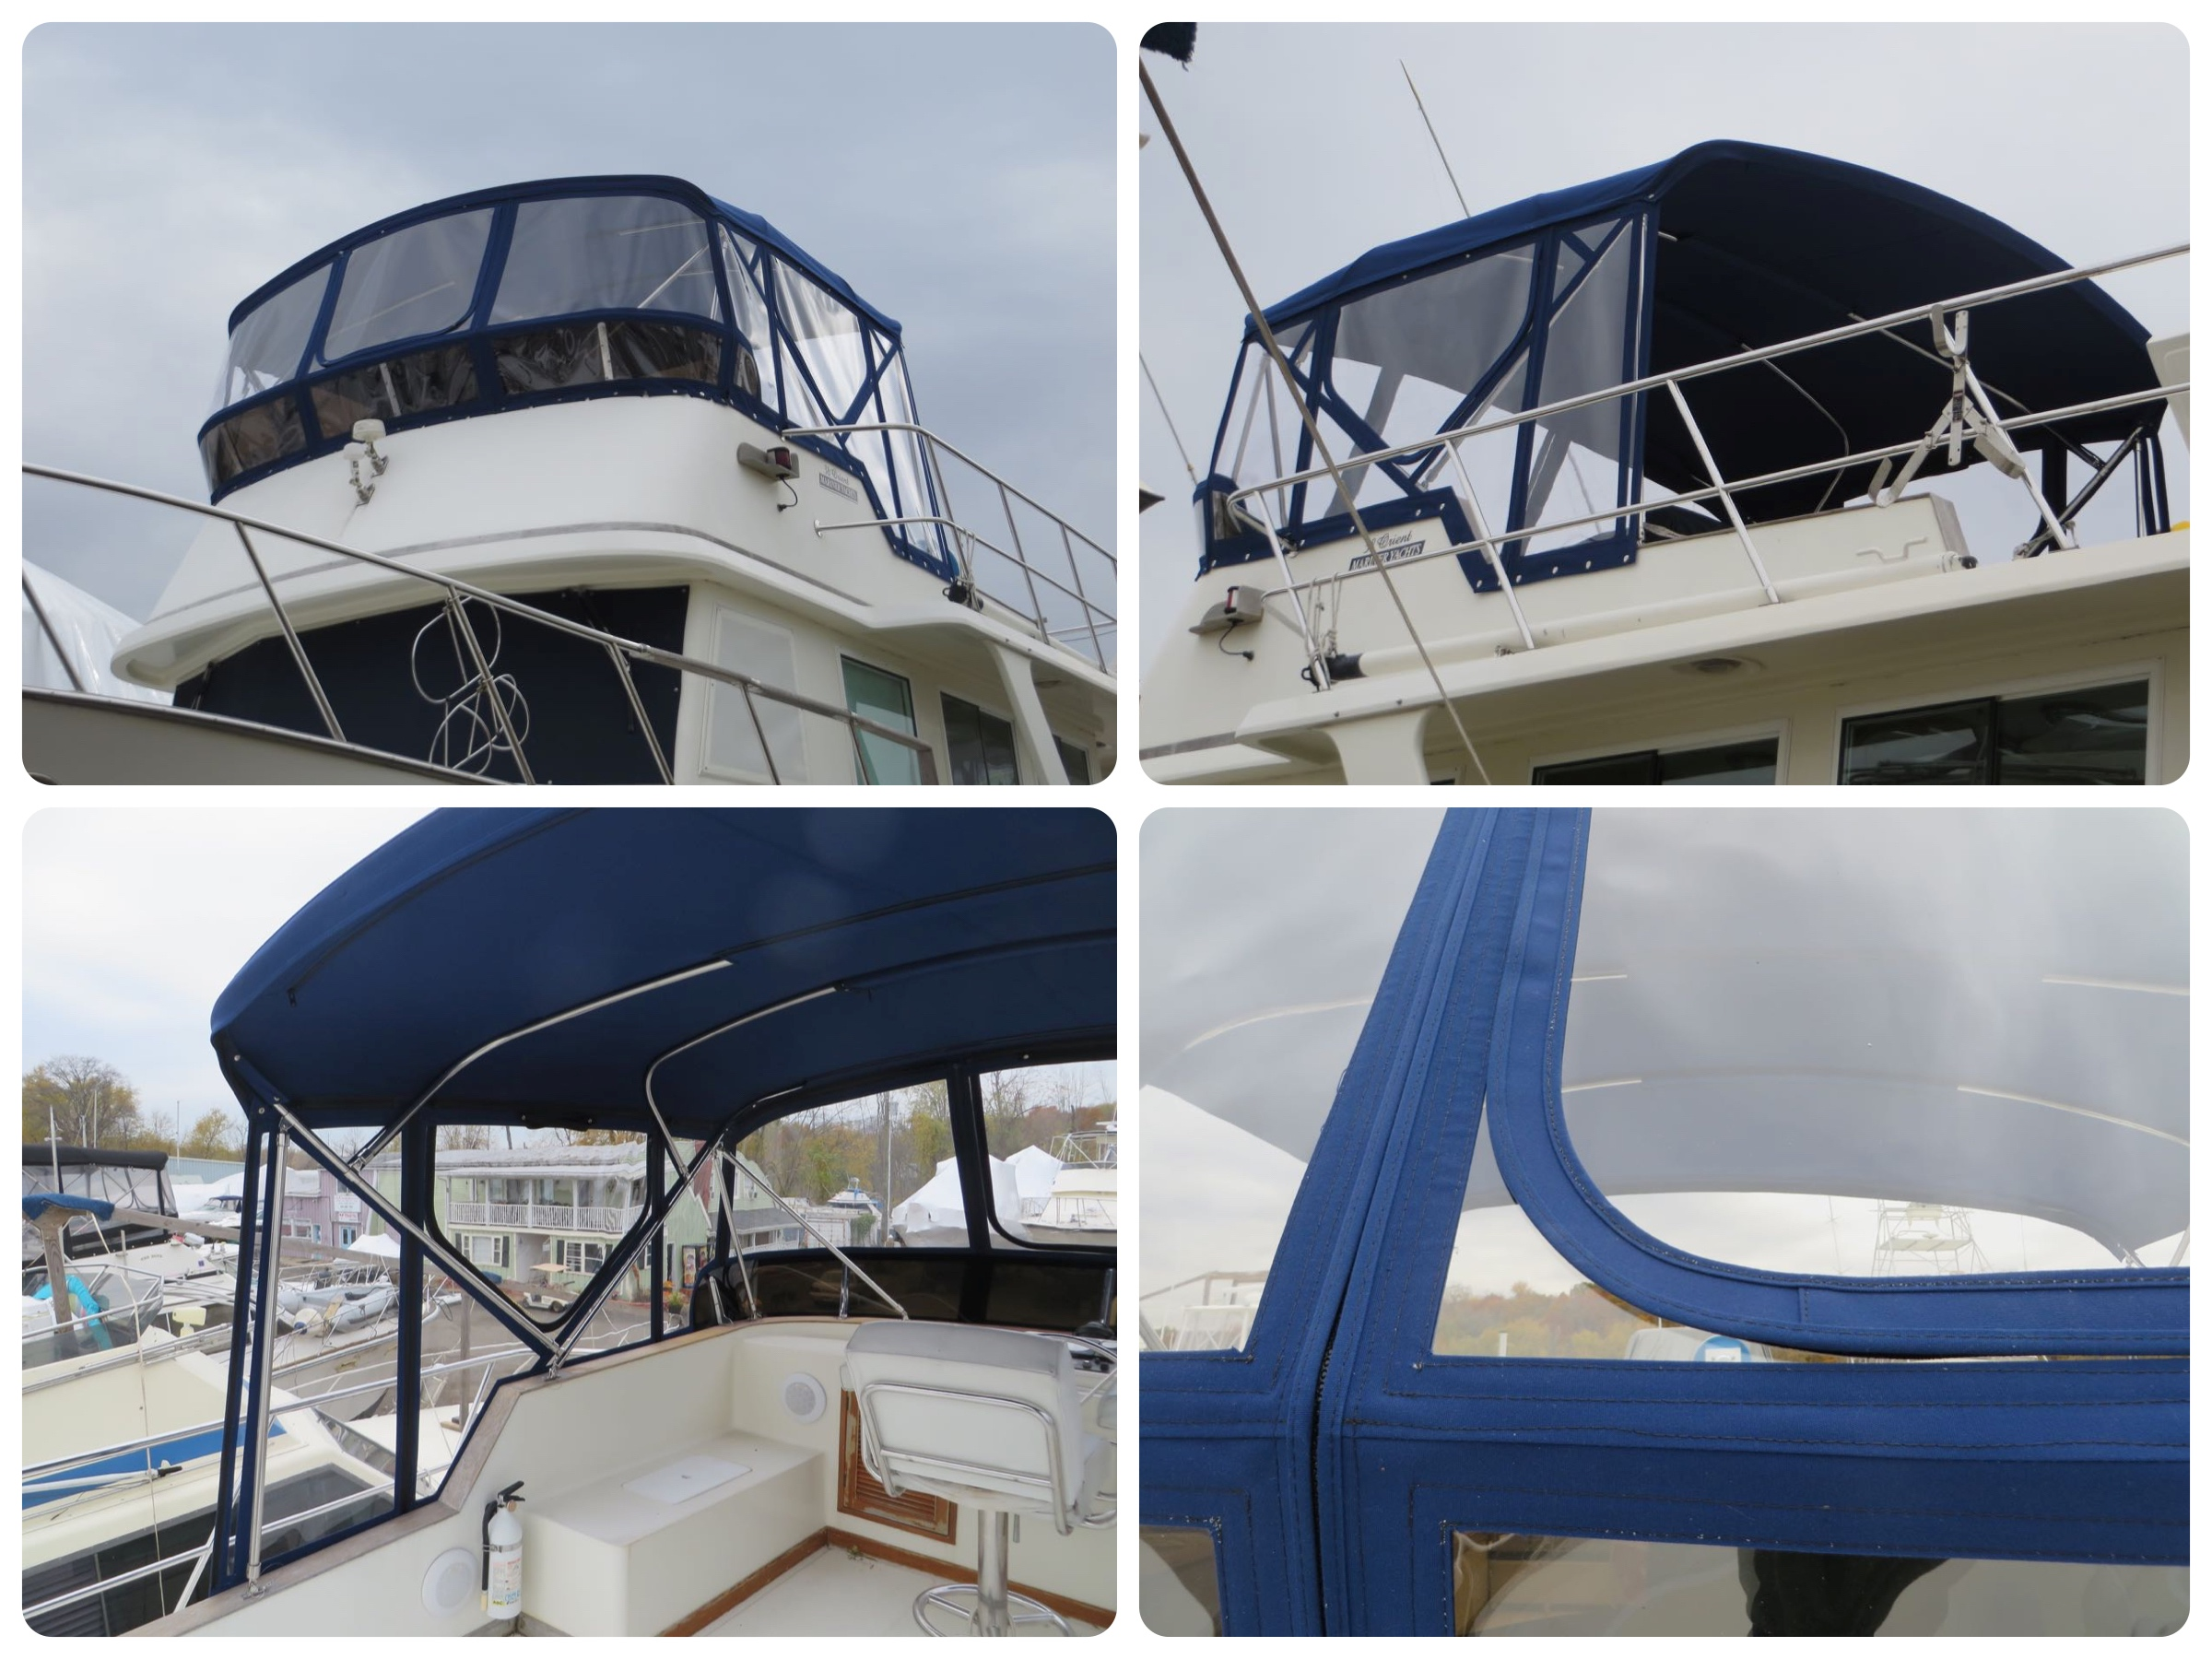 The finished bimini! Excellent workmanship - we are quite pleased with it.